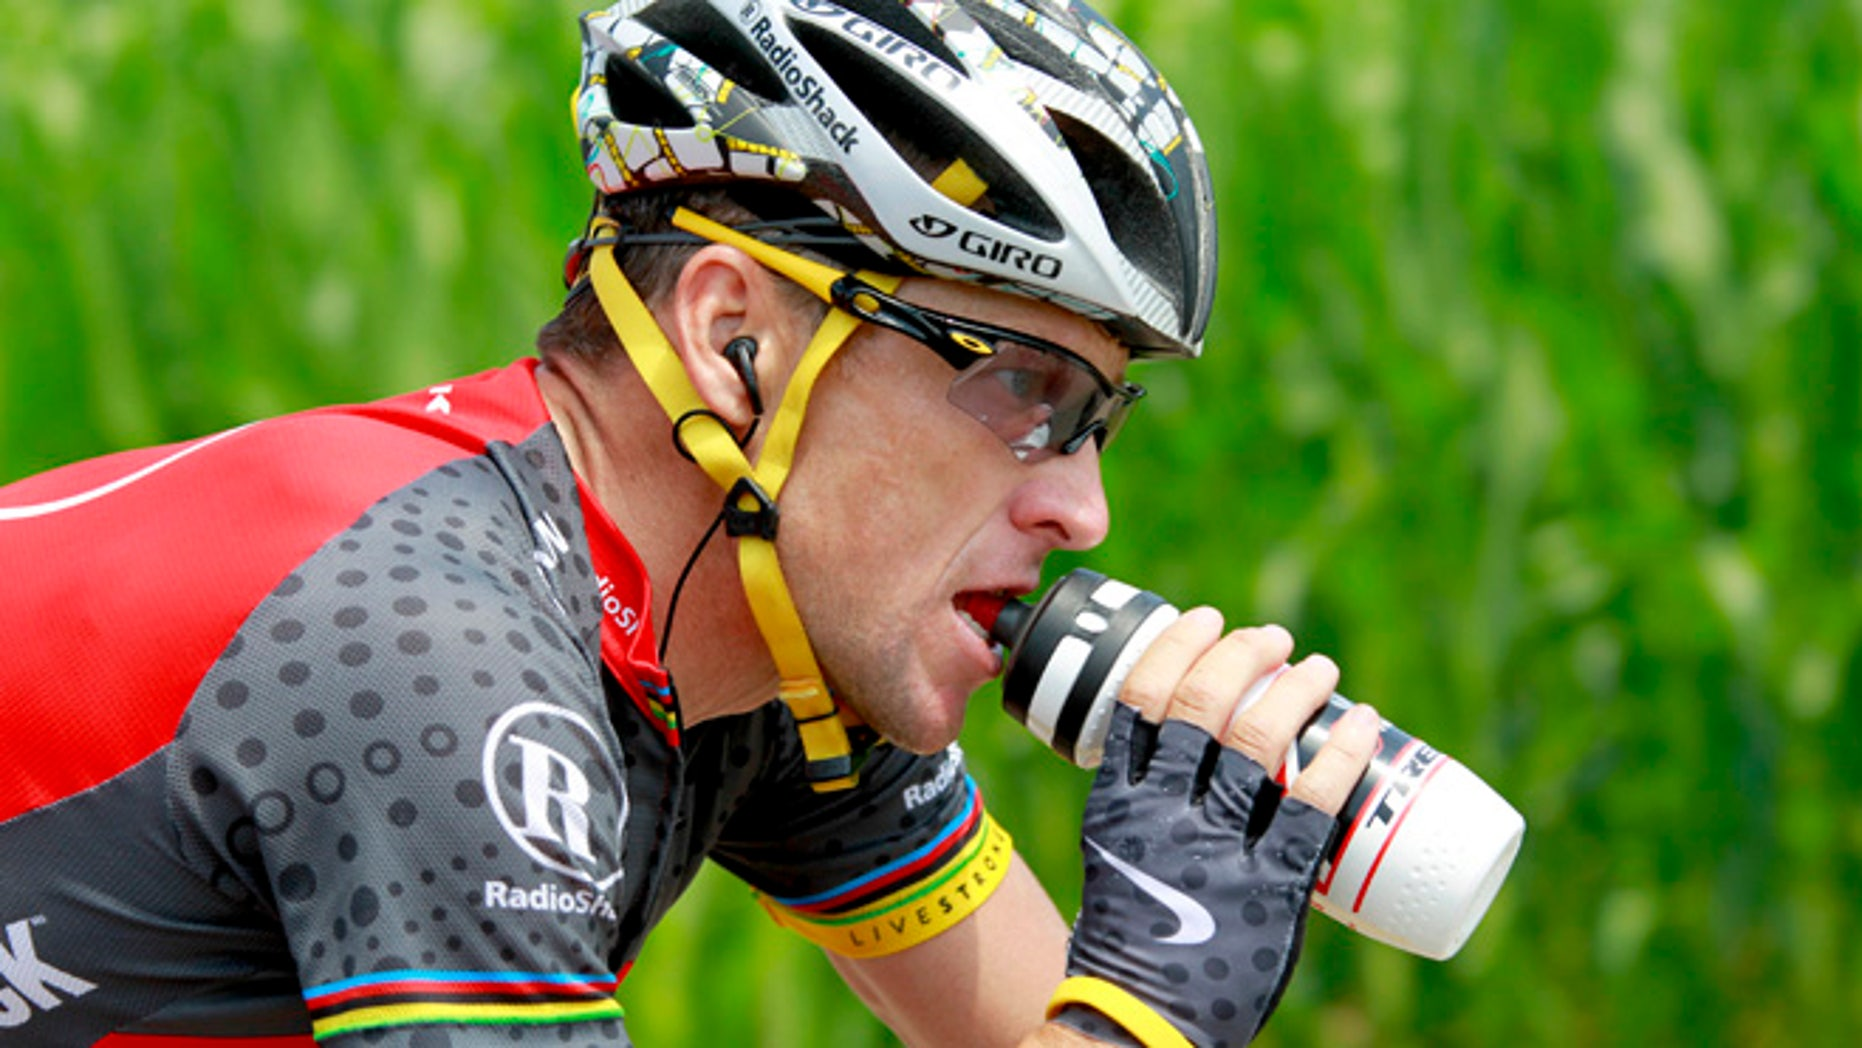 July 10, 2010: In this file photo, Lance Armstrong drinks during the seventh stage of the Tour de France cycling race from Tournus and to Station des Rousses, France. Nike Inc. is cutting ties with the Livestrong cancer charity. The move by the sports company ends a nine-year relationship that helped the foundation raise more than $100 million and made the charity's signature yellow wristband an international symbol for cancer survivors.